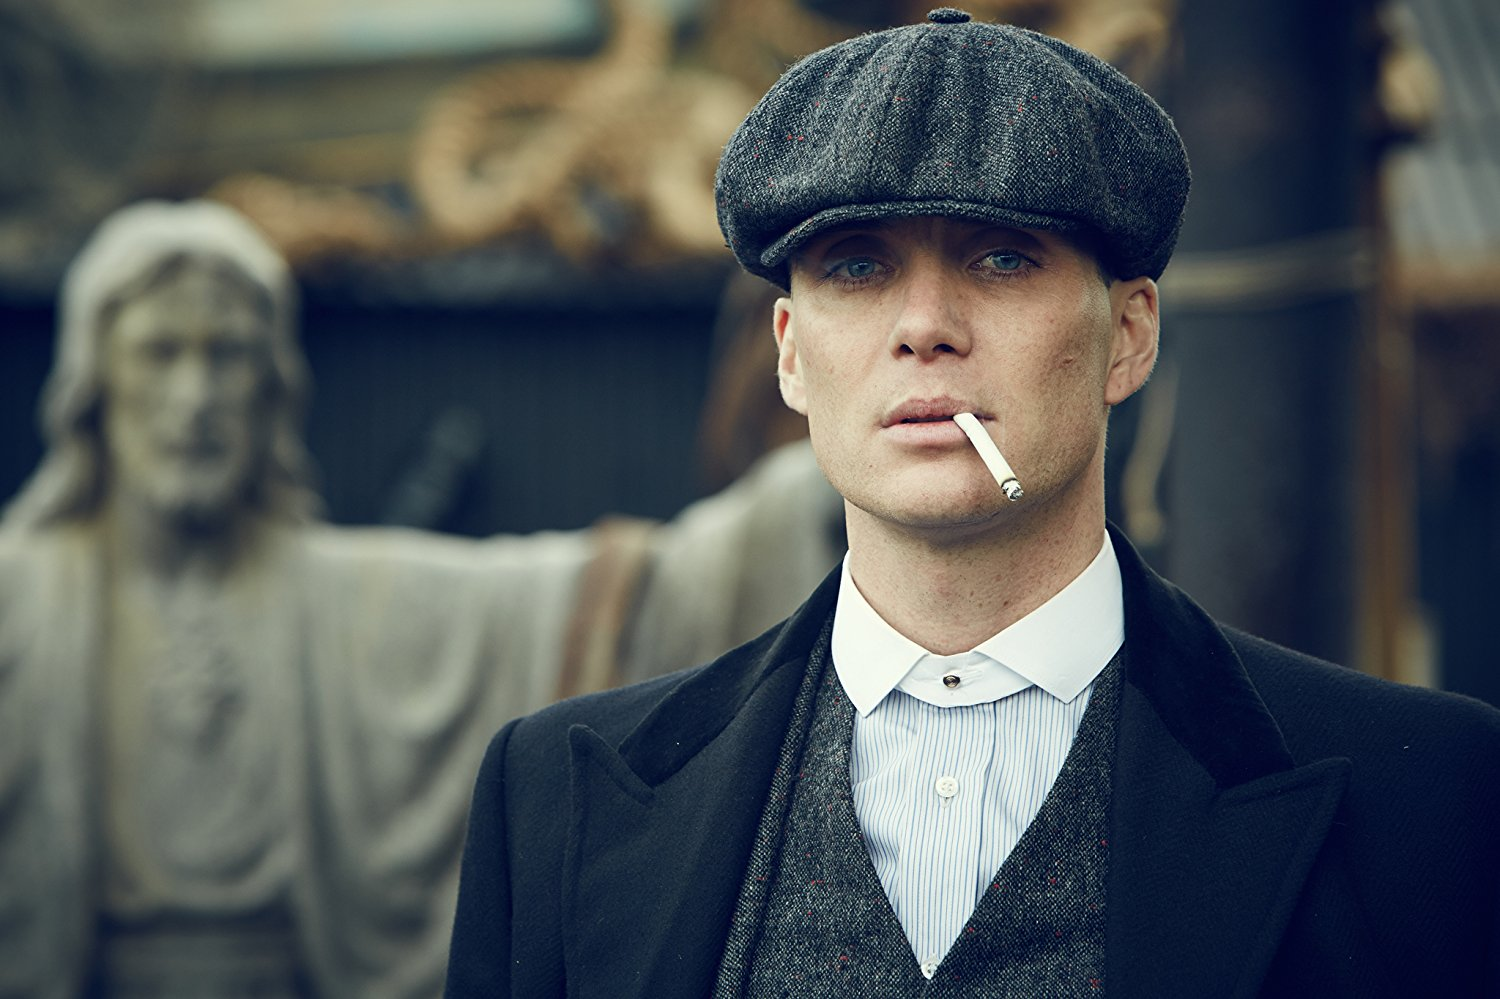 Inside The Screen The Epic Set Design of Peaky Blinders 2